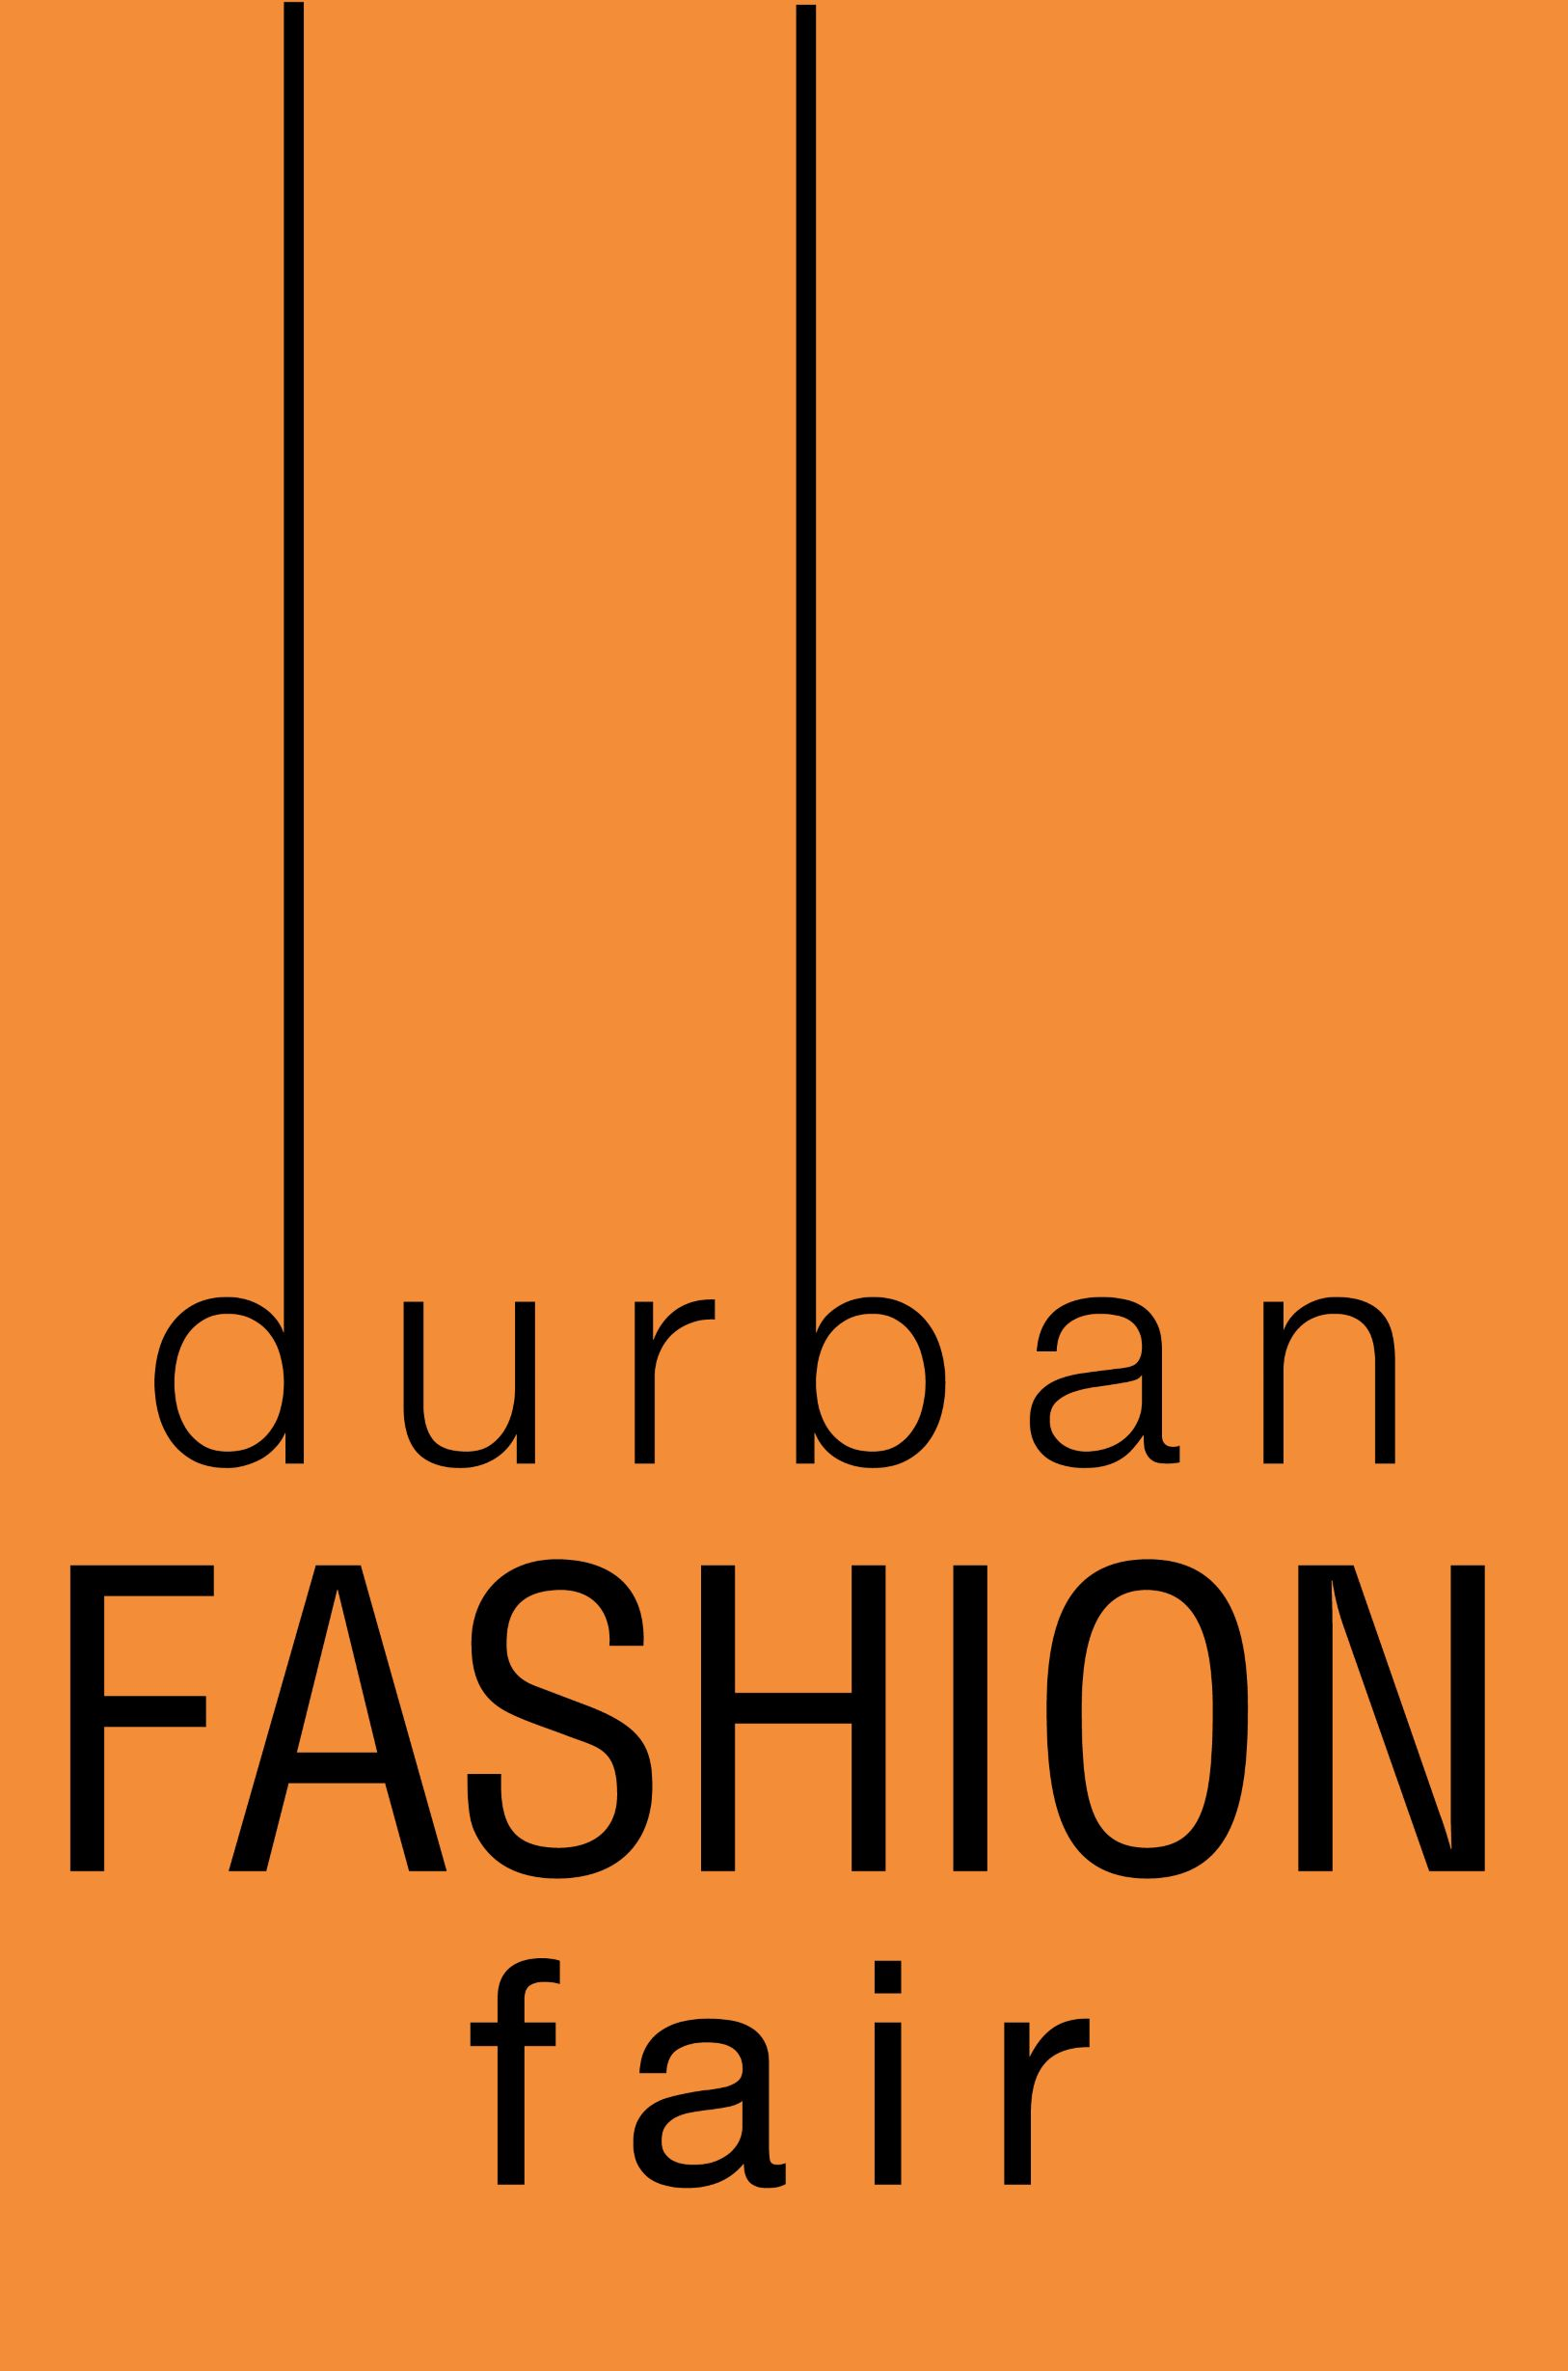 Durban-Fashion-fair-Logo 3